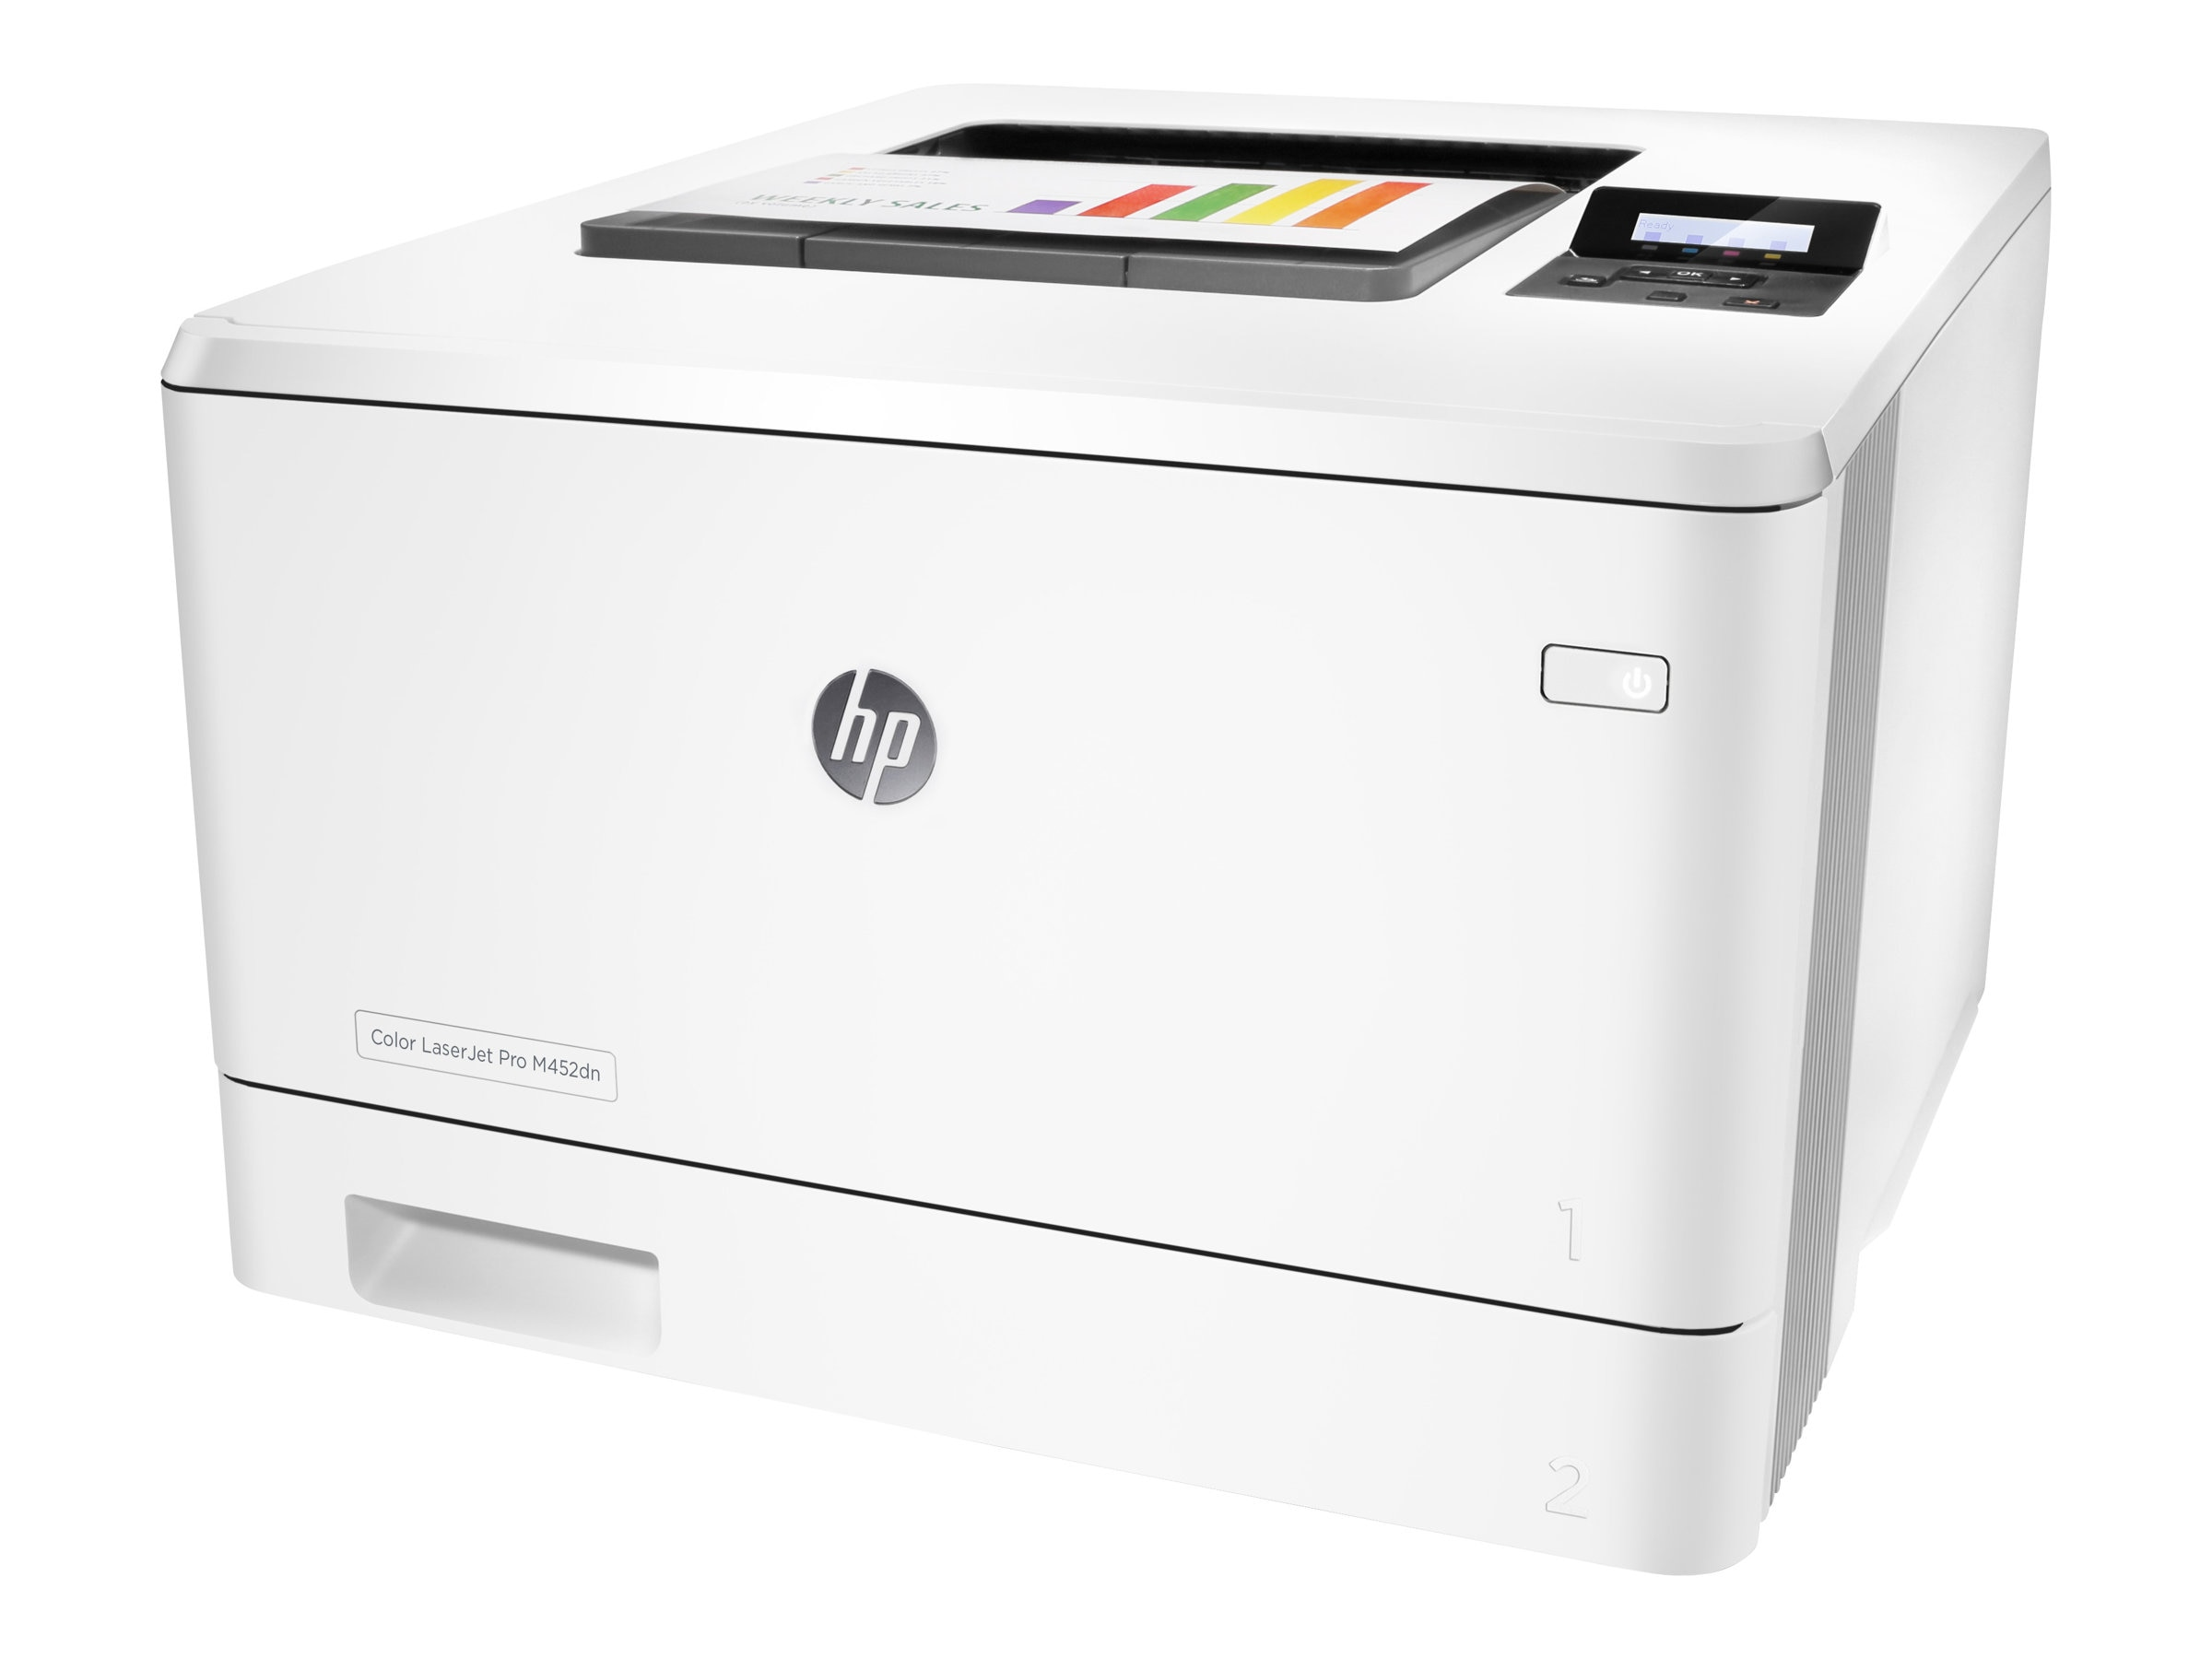 HP Color LaserJet Pro M452dn Printer